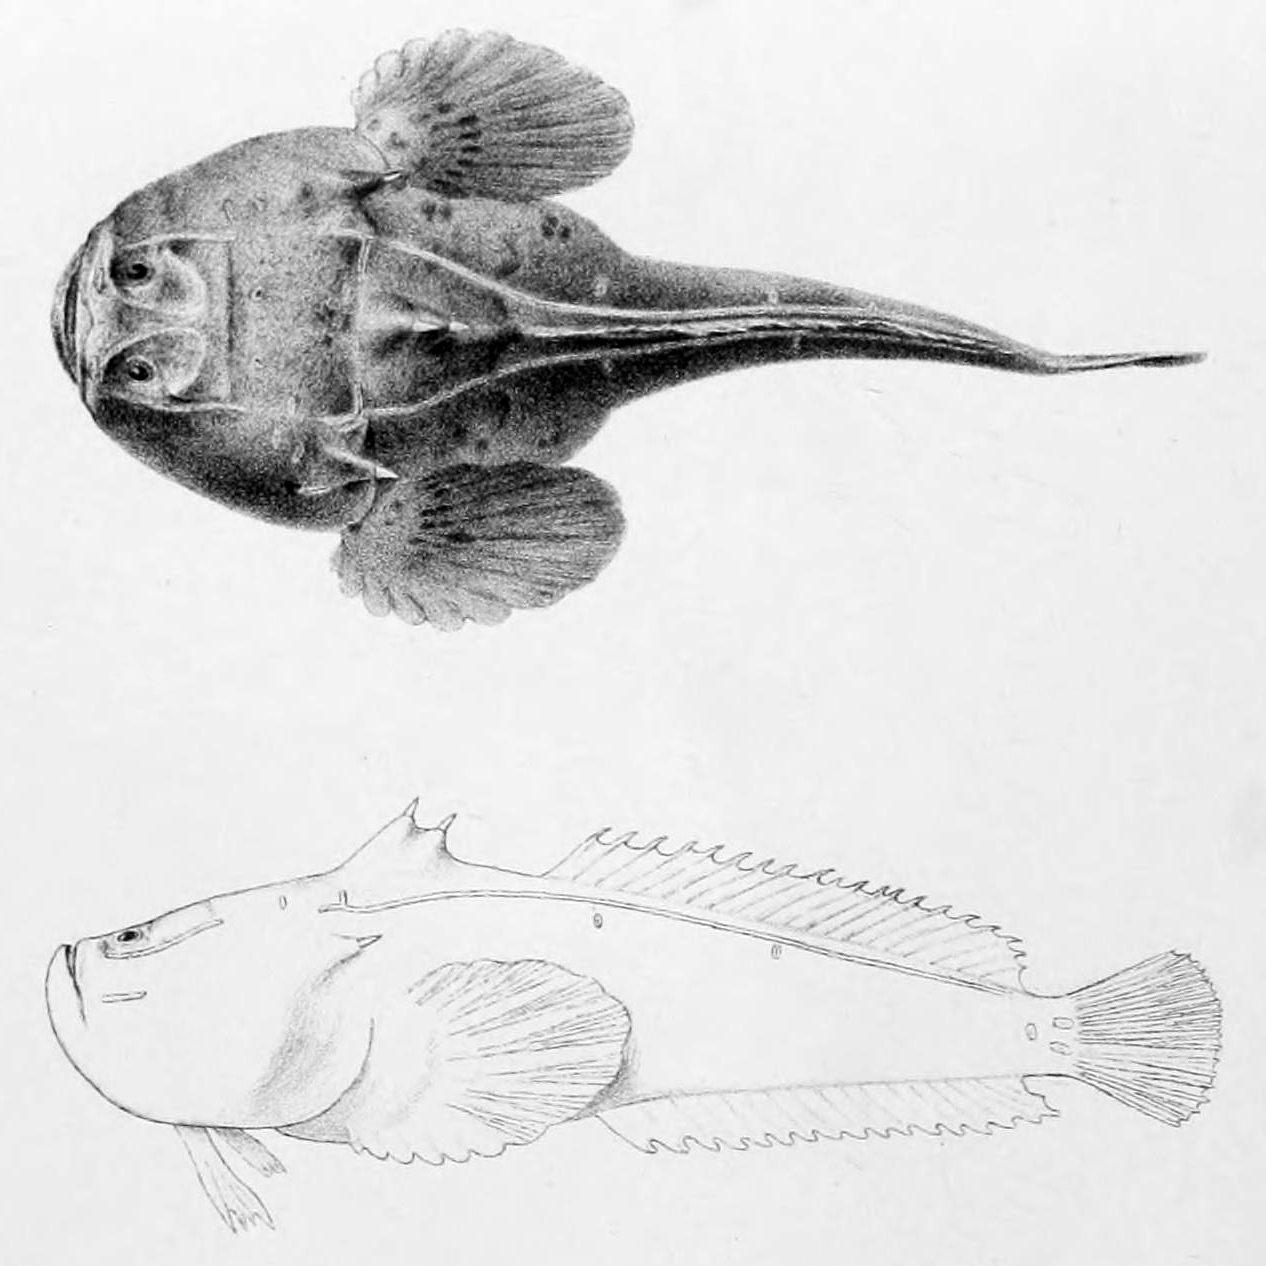 Thalassophryne maculosa Transactions of the Zoological Society of London Pl. 68 7408565536